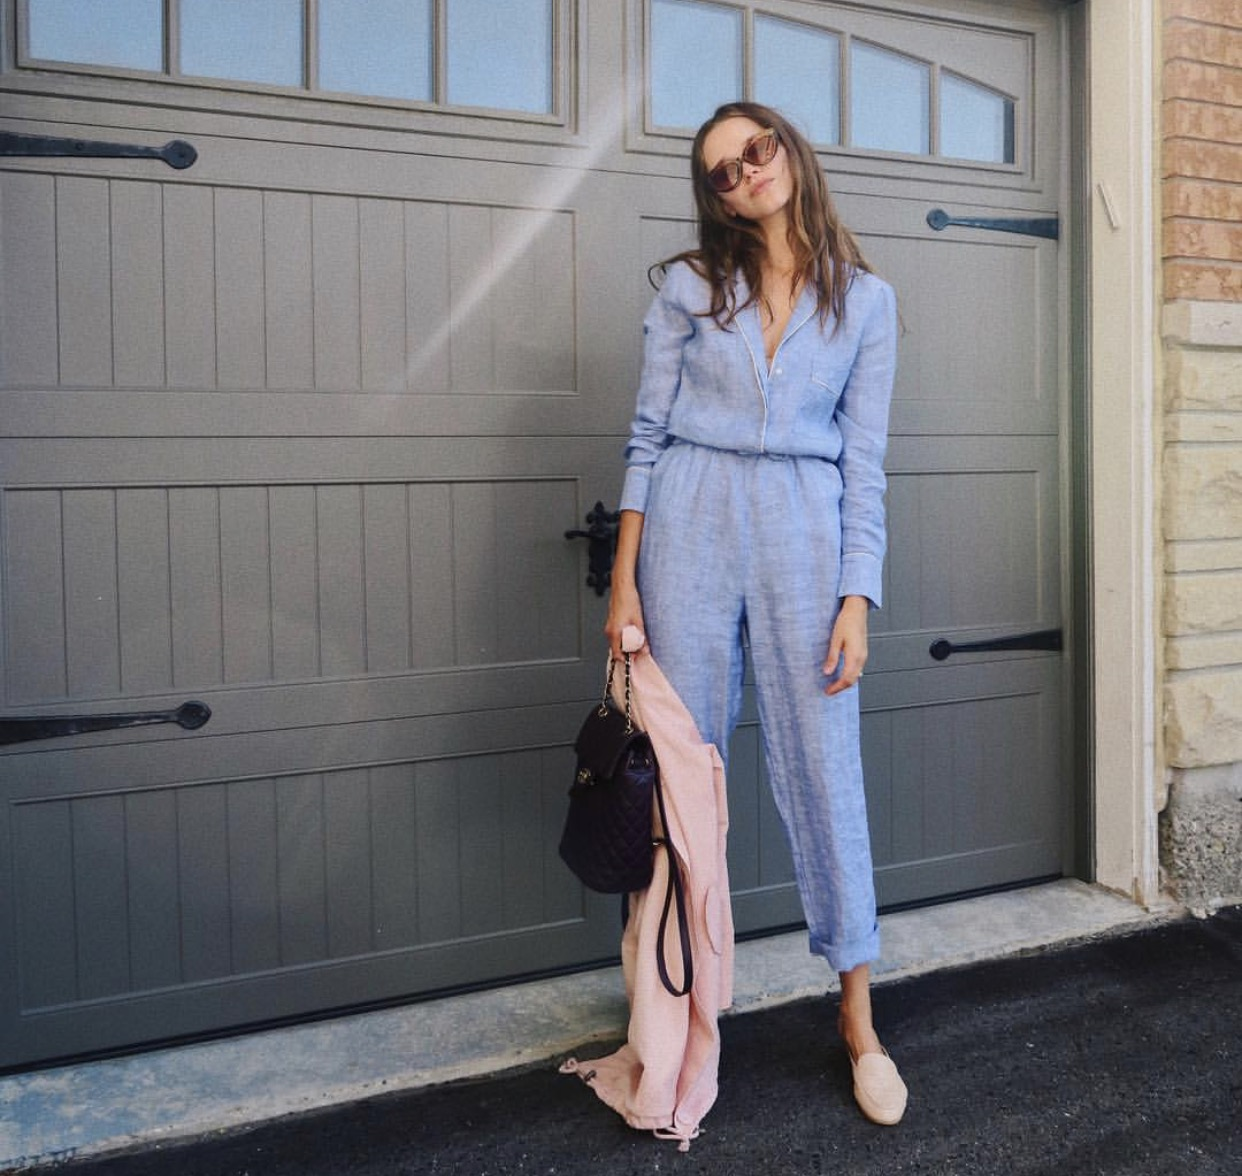 Jumpsuit: Zara (old), similar  HERE , HERE or  HERE   Mules: UO (old), similar  HERE   Jacket: Forever 21 (old), similar  HERE   Sunglasses: vintage